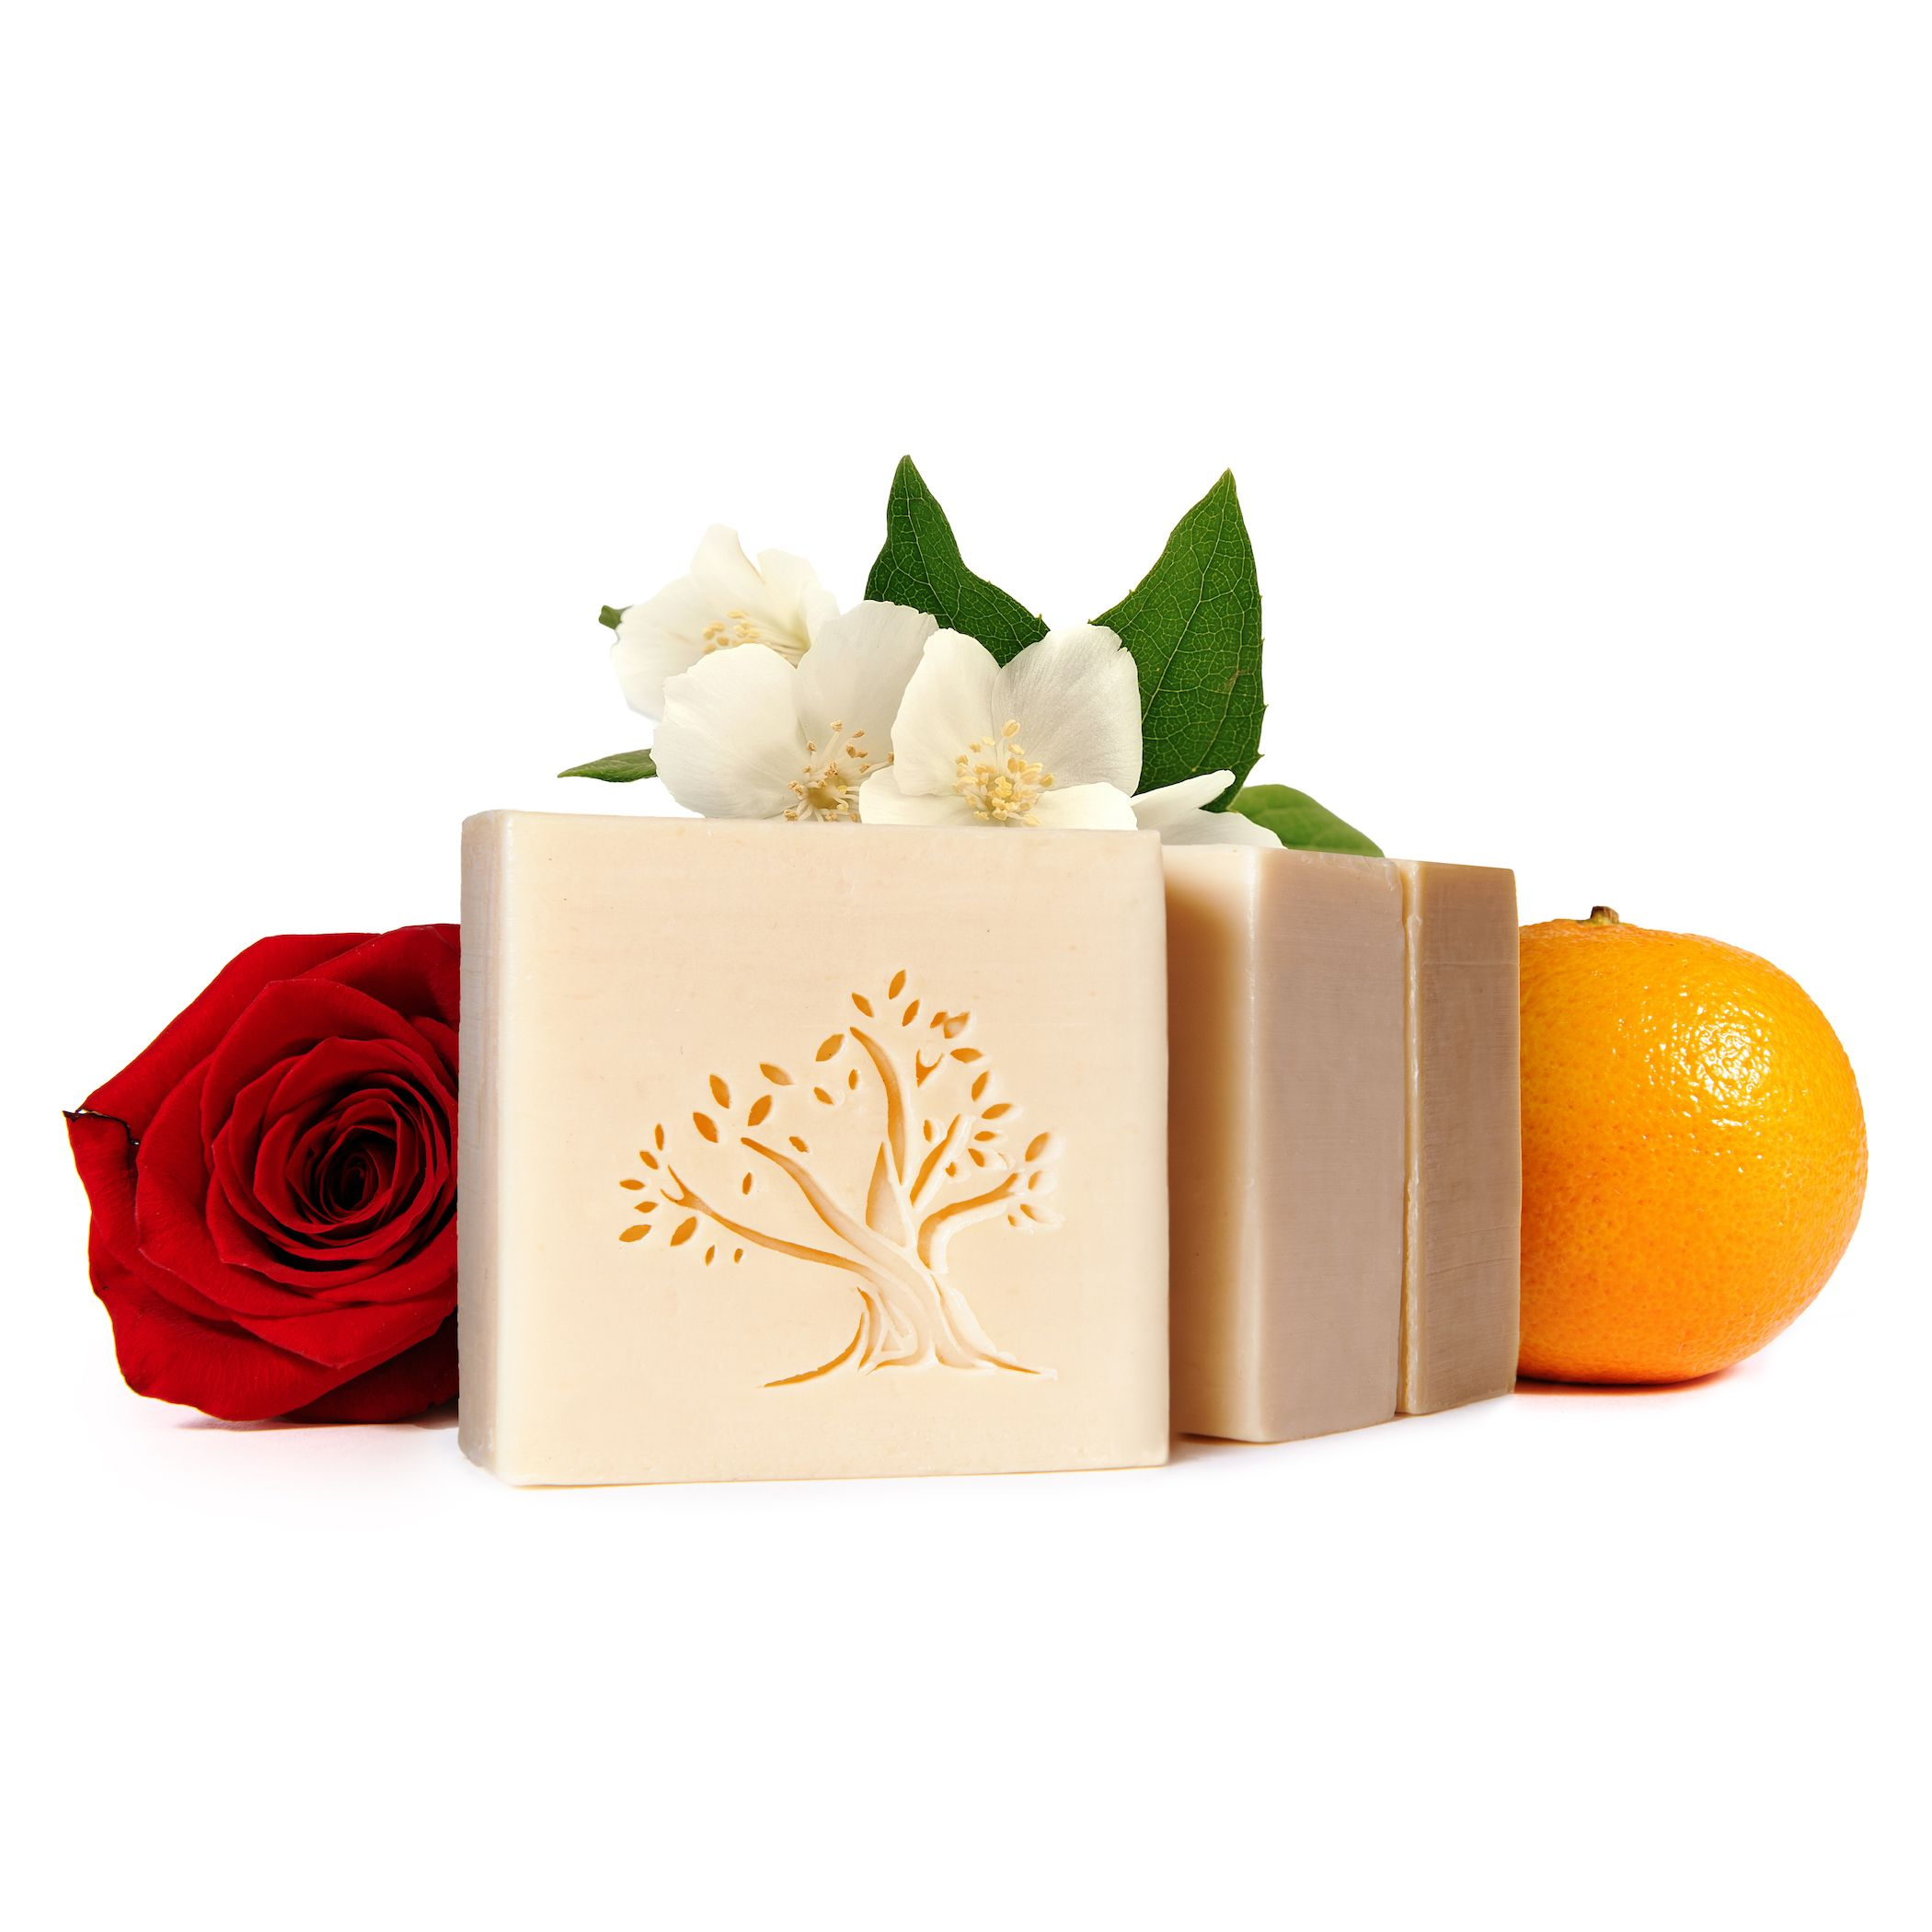 Le Joyau d'Olive Luxury Ancestral Soap, Handcrafted Artisanal Virgin Olive & Essential Oils, Gift Pack of 3 units – for Face and Body – Jasmine, Rose, Orange Blossom